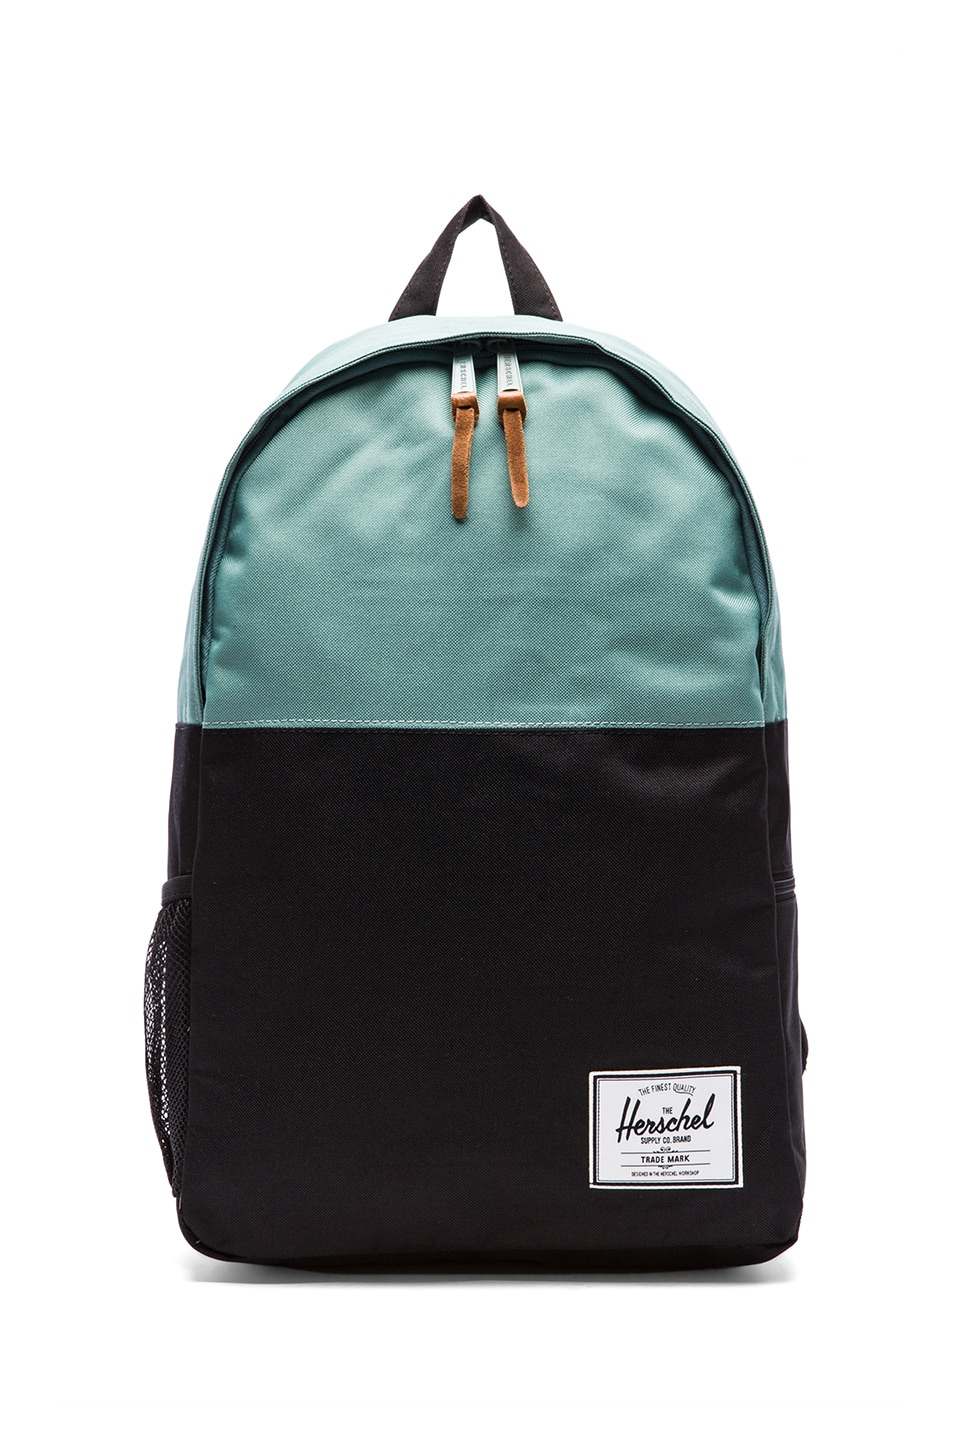 Herschel Supply Co. Jasper Backpack in Black & Seafoam